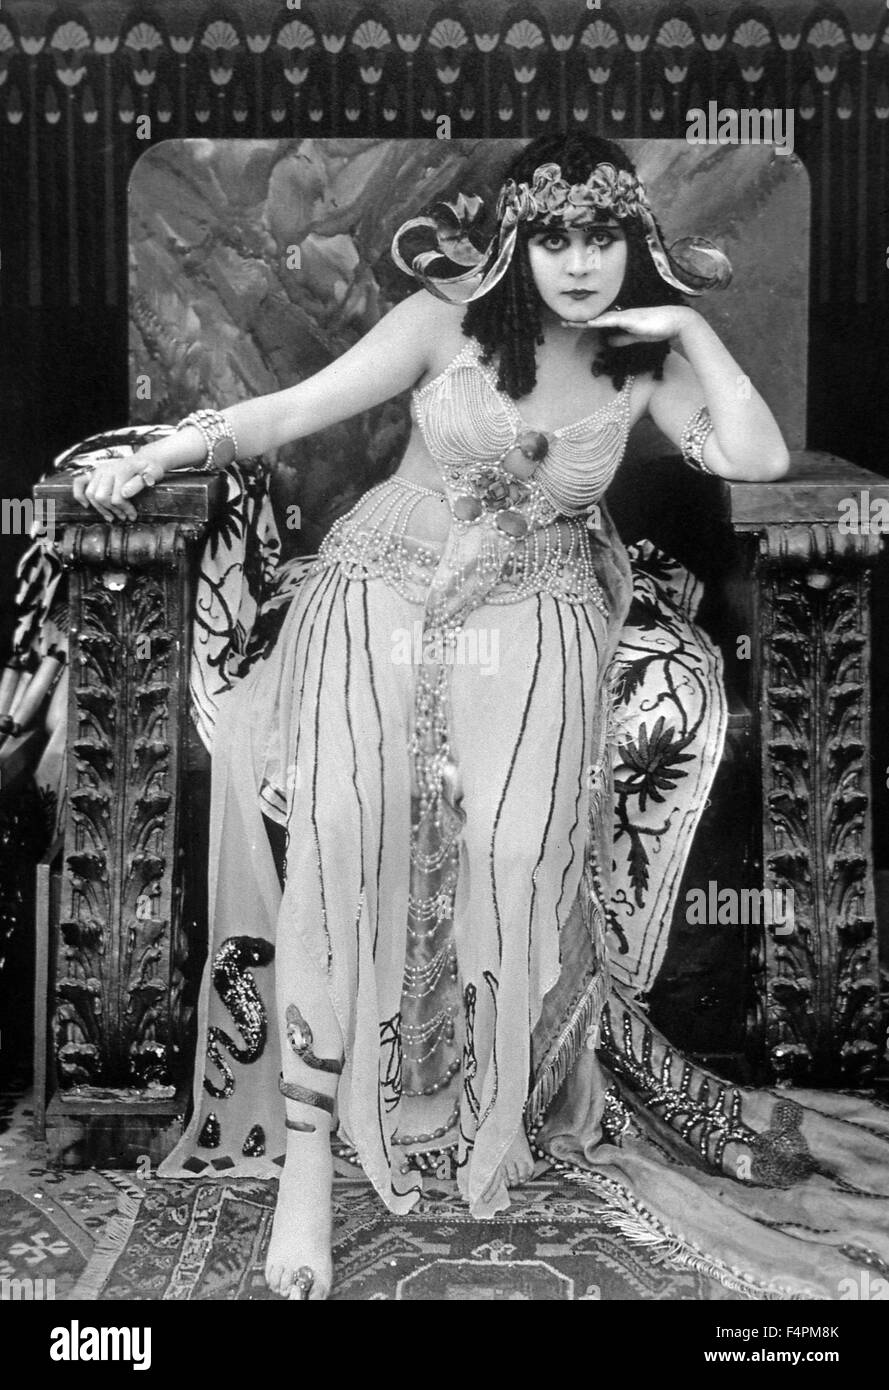 Theda Bara / Cleopatra / 1917 directed by J. Gordon Edwards [Film Fox Corporation] - Stock Image